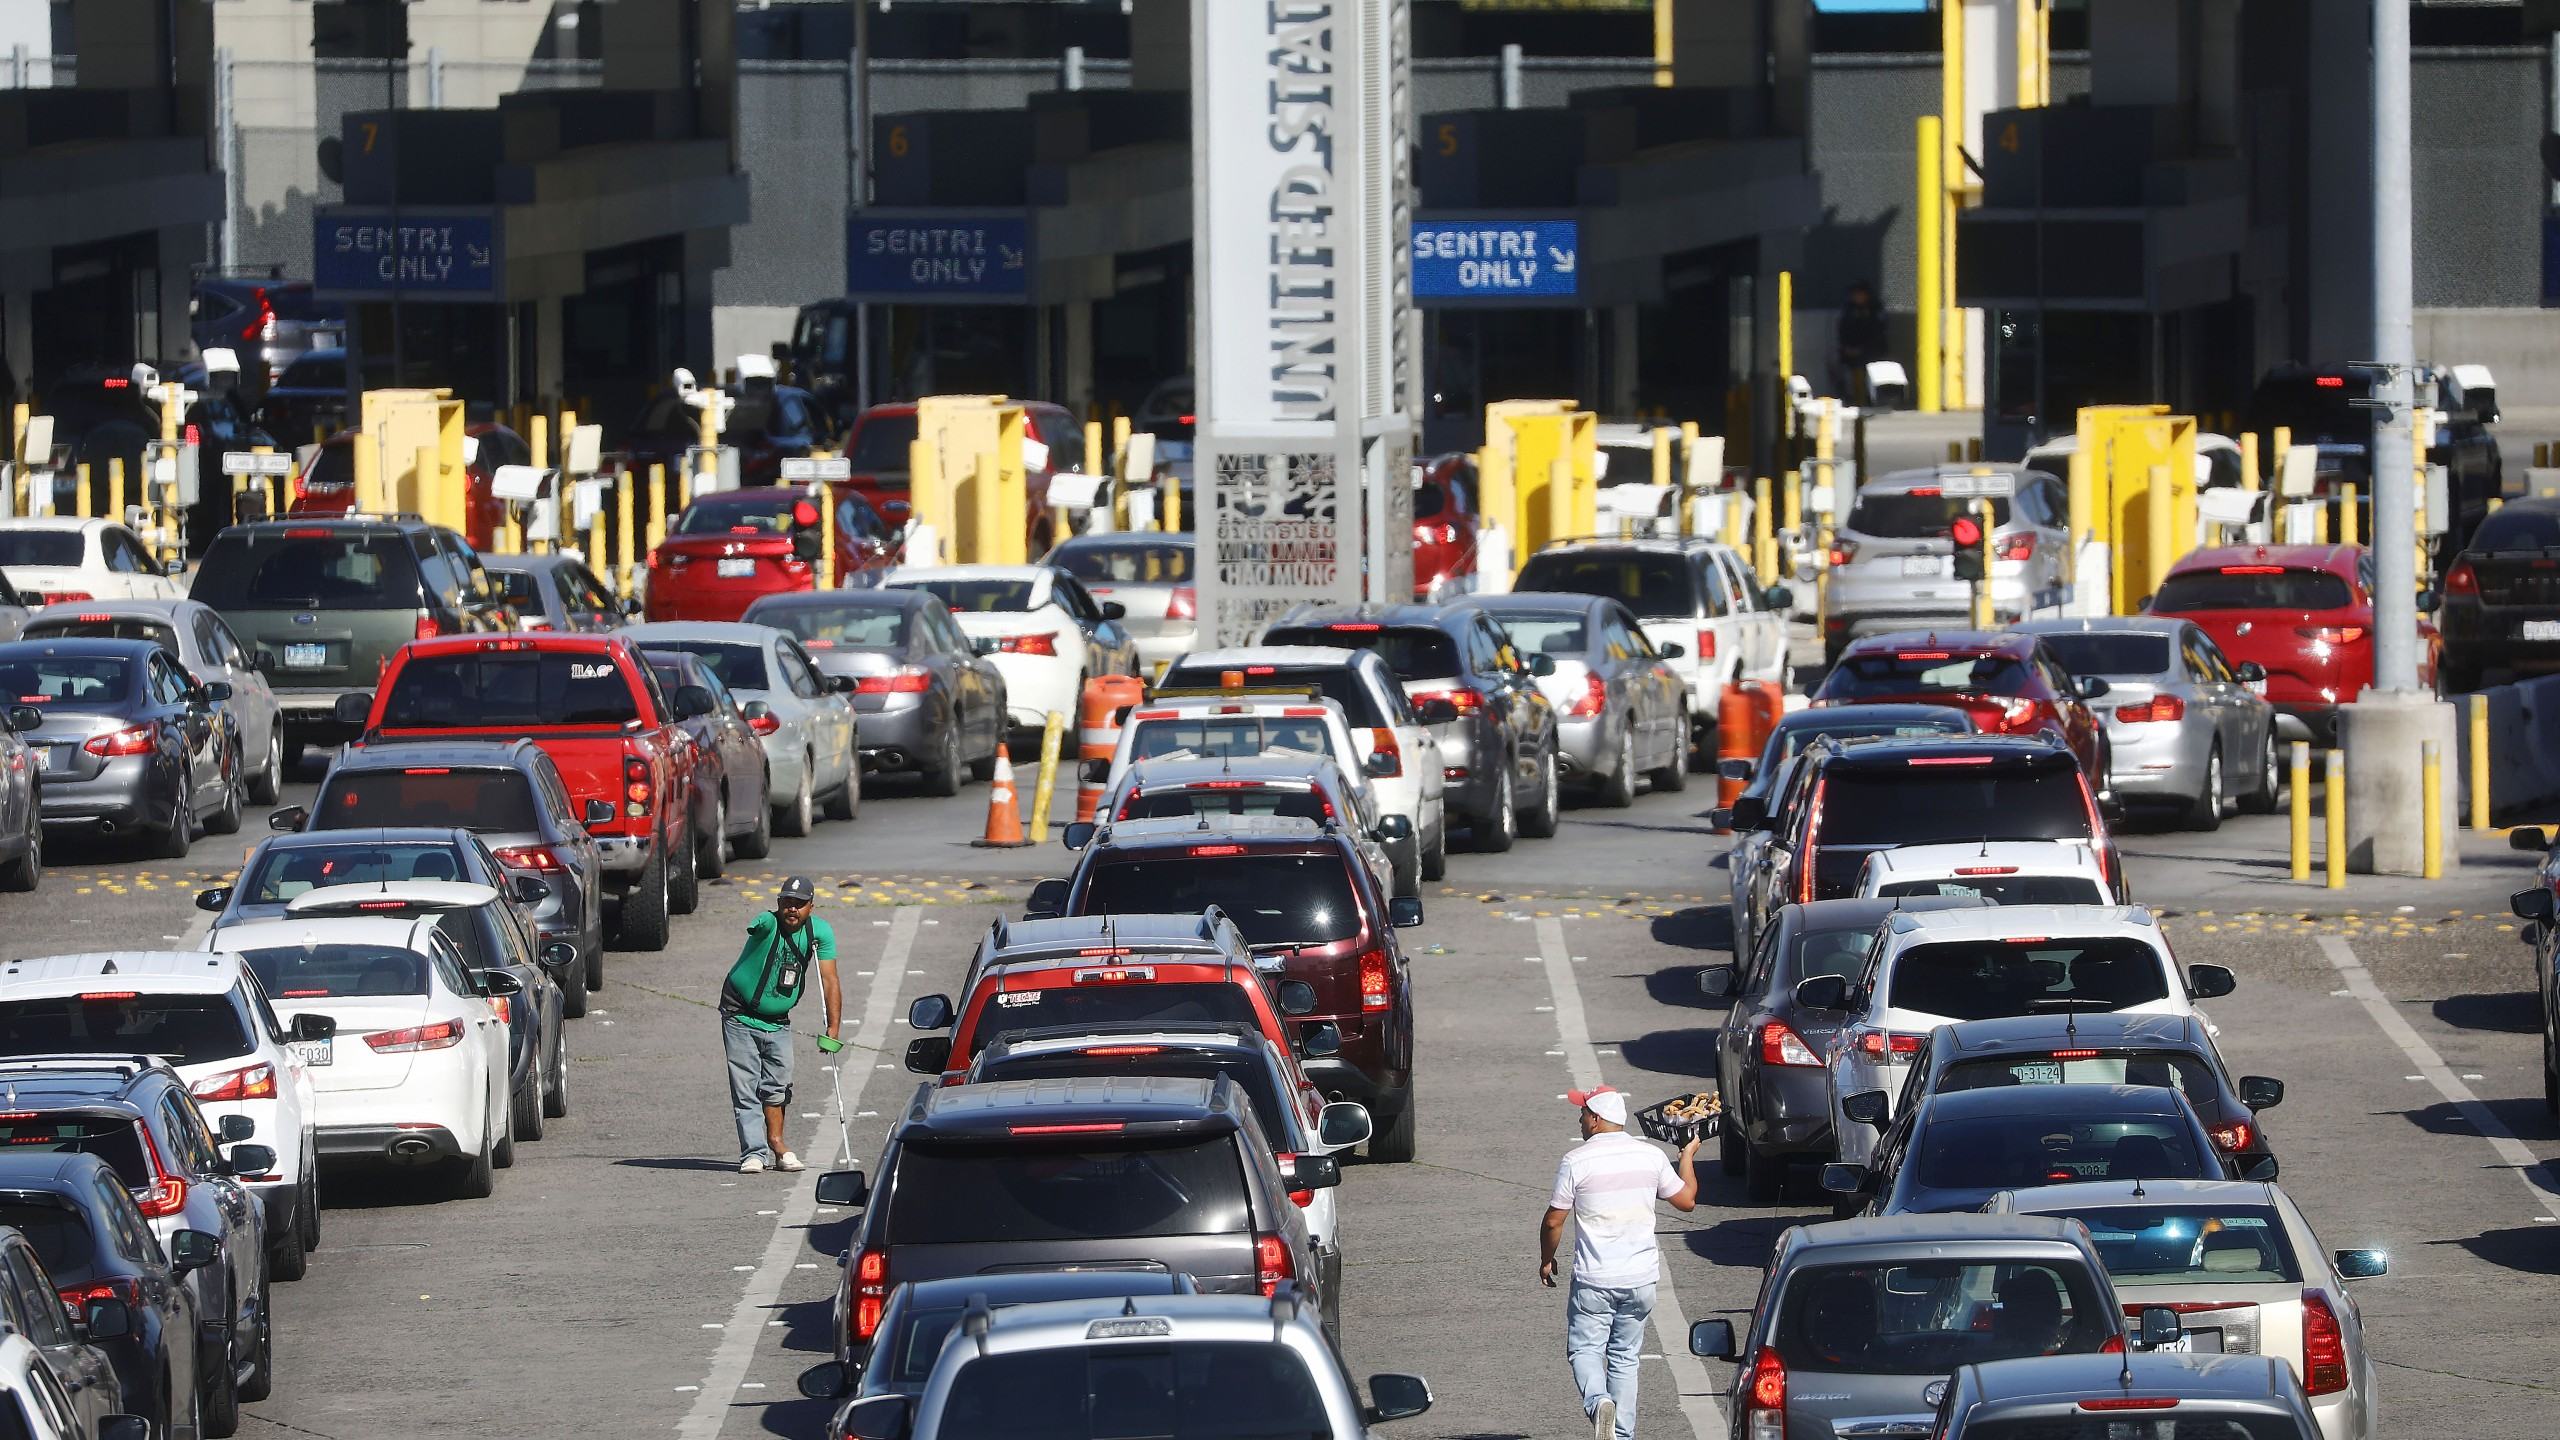 Cars line up to cross into the United States at the San Ysidro Port of Entry on March 31, 2019, in Tijuana, Mexico. (Credit: Mario Tama/Getty Images)